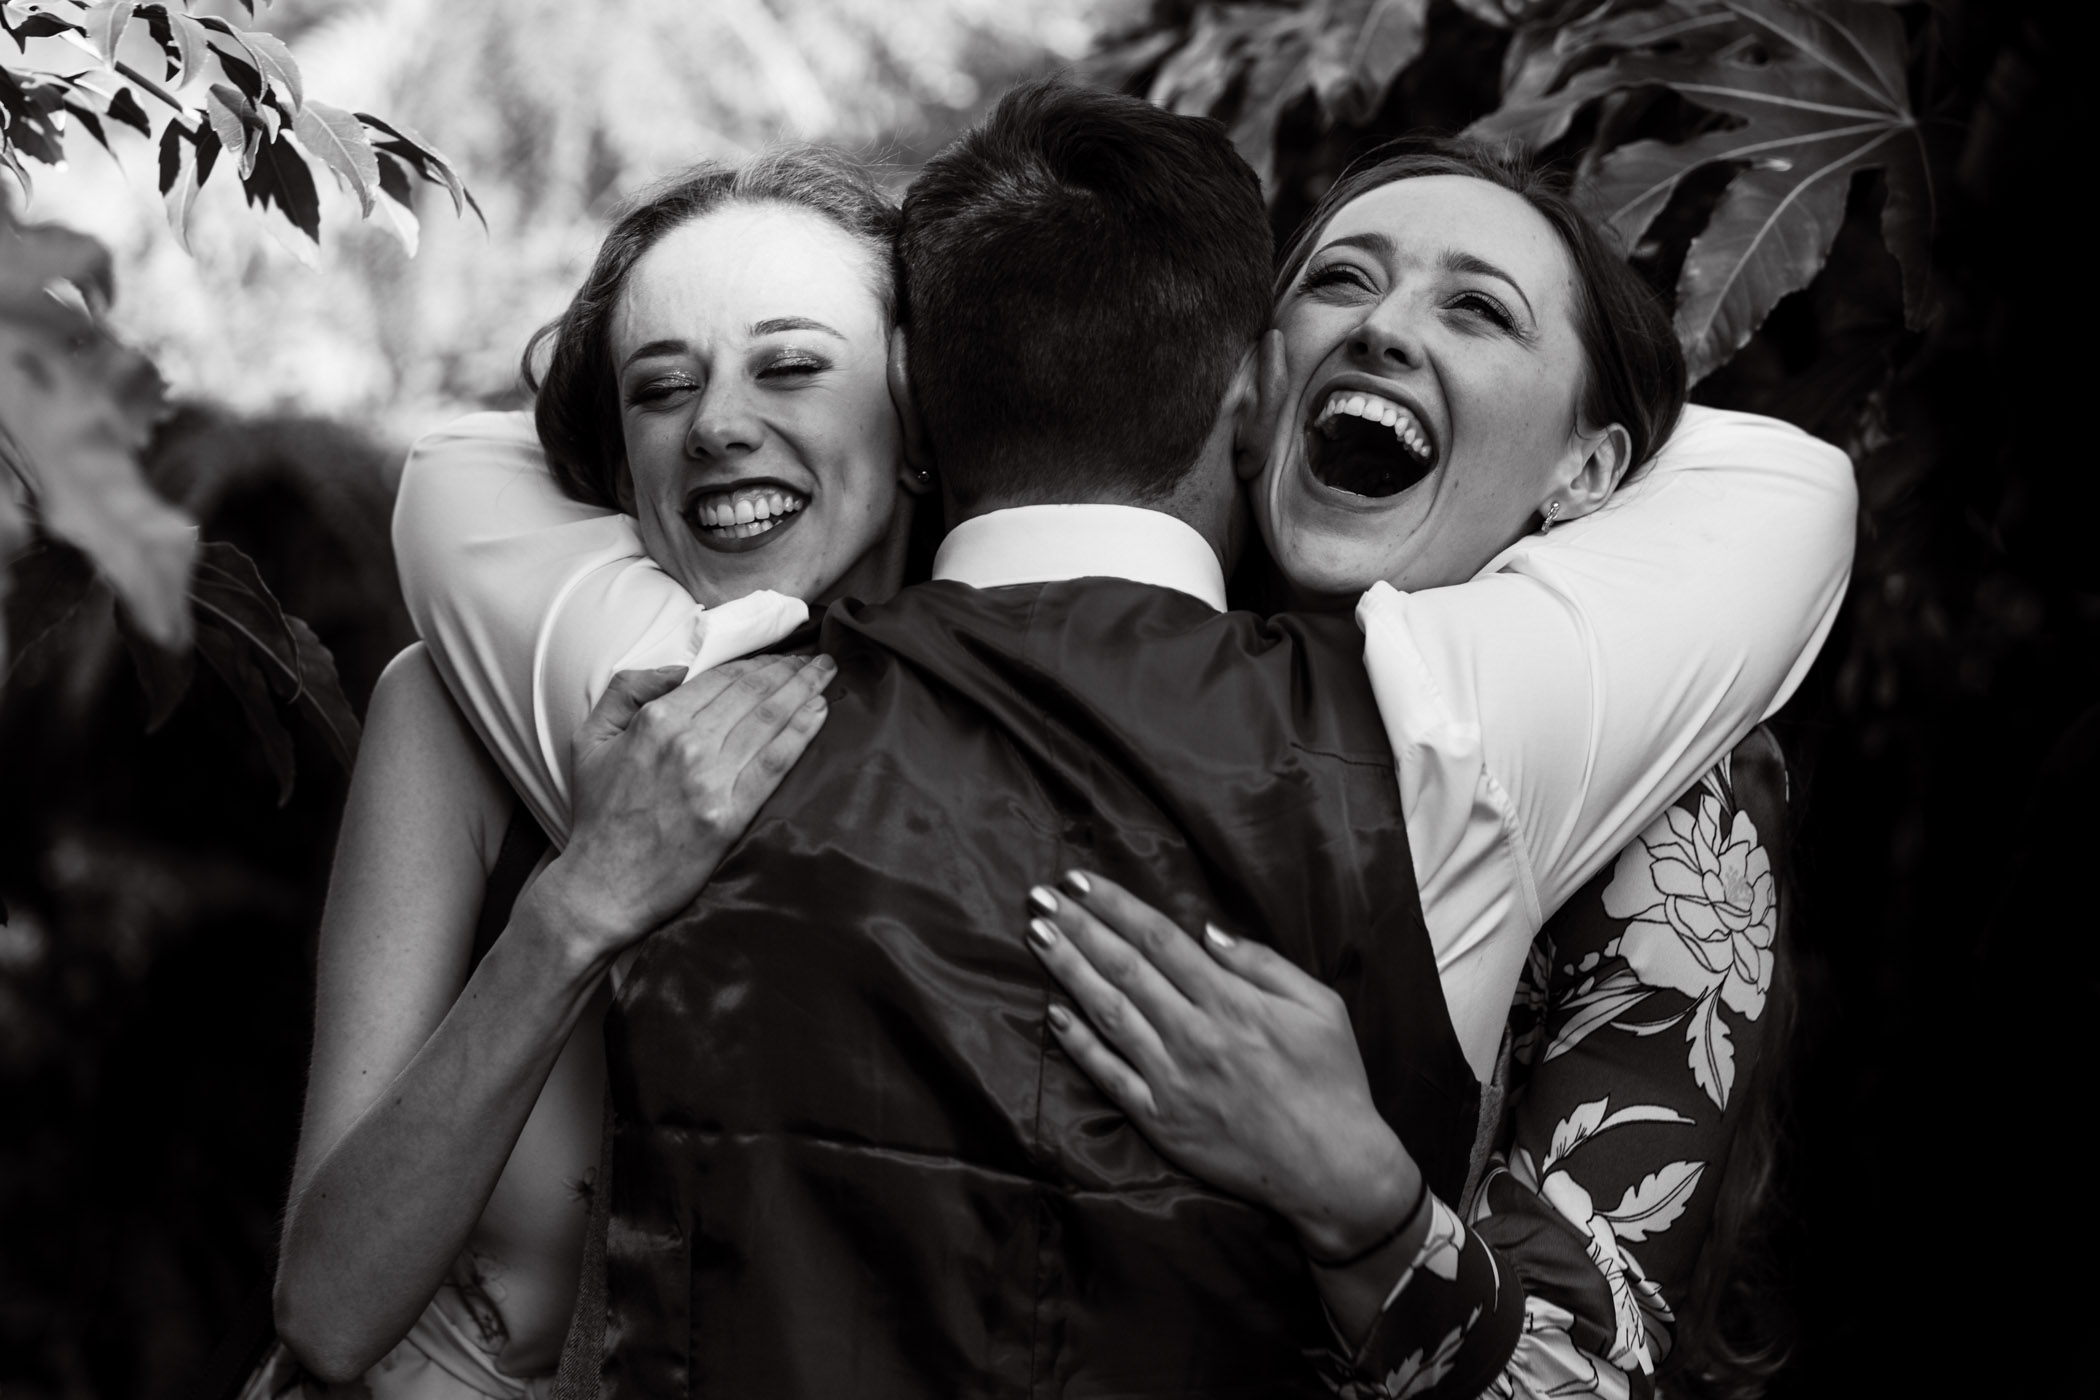 Another personal favourite of mine, I capture so many hugs and kisses at weddings but I do love to capture a double hug with amazing expressions